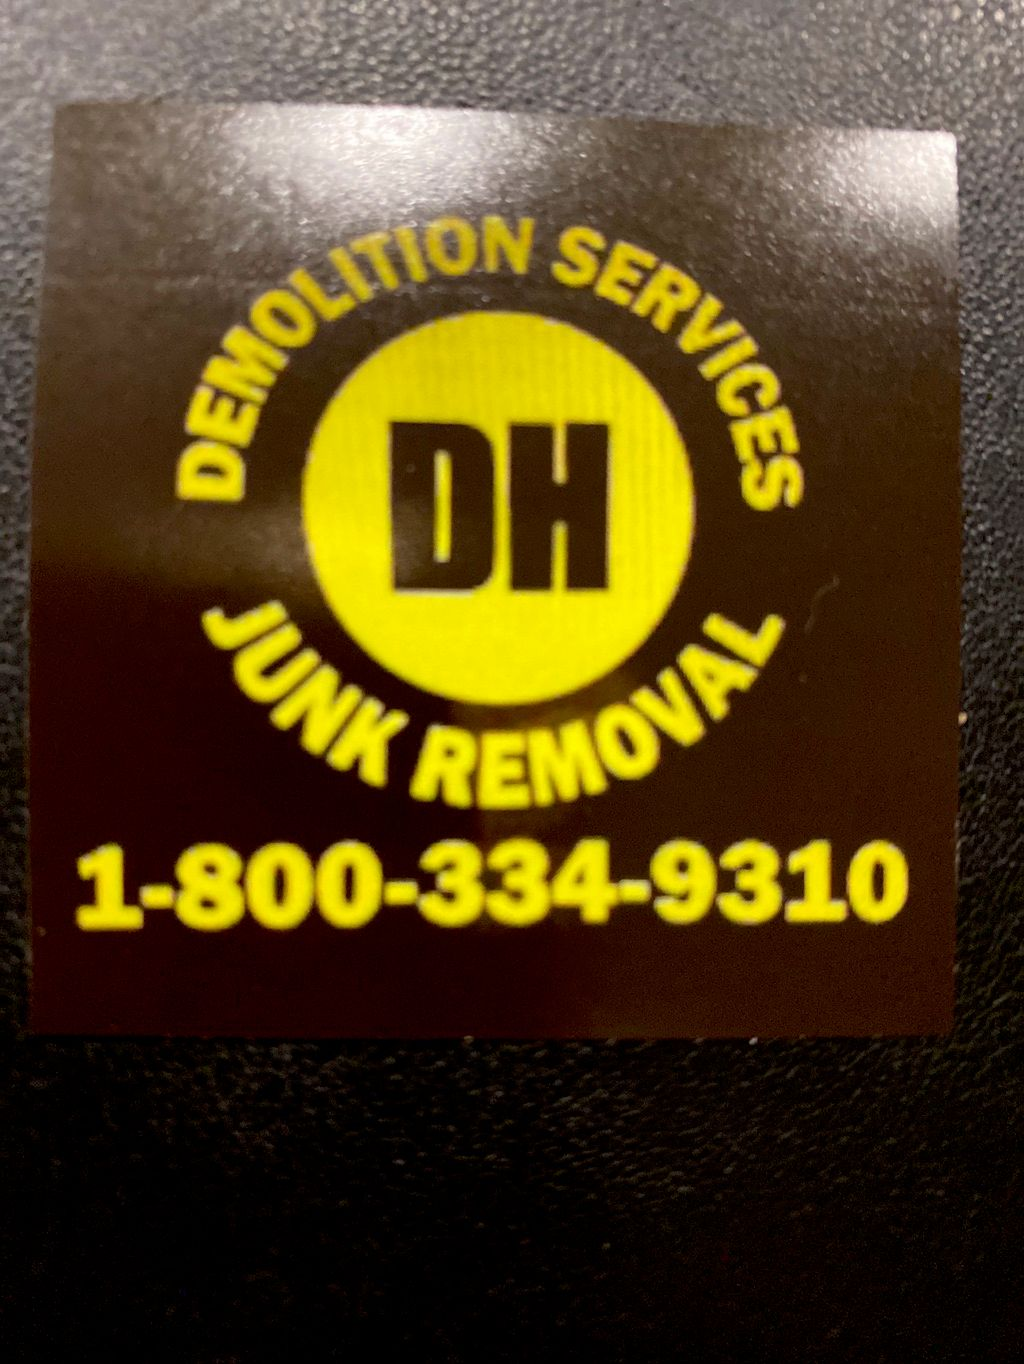 DH Demolition & Junk Removal LLC